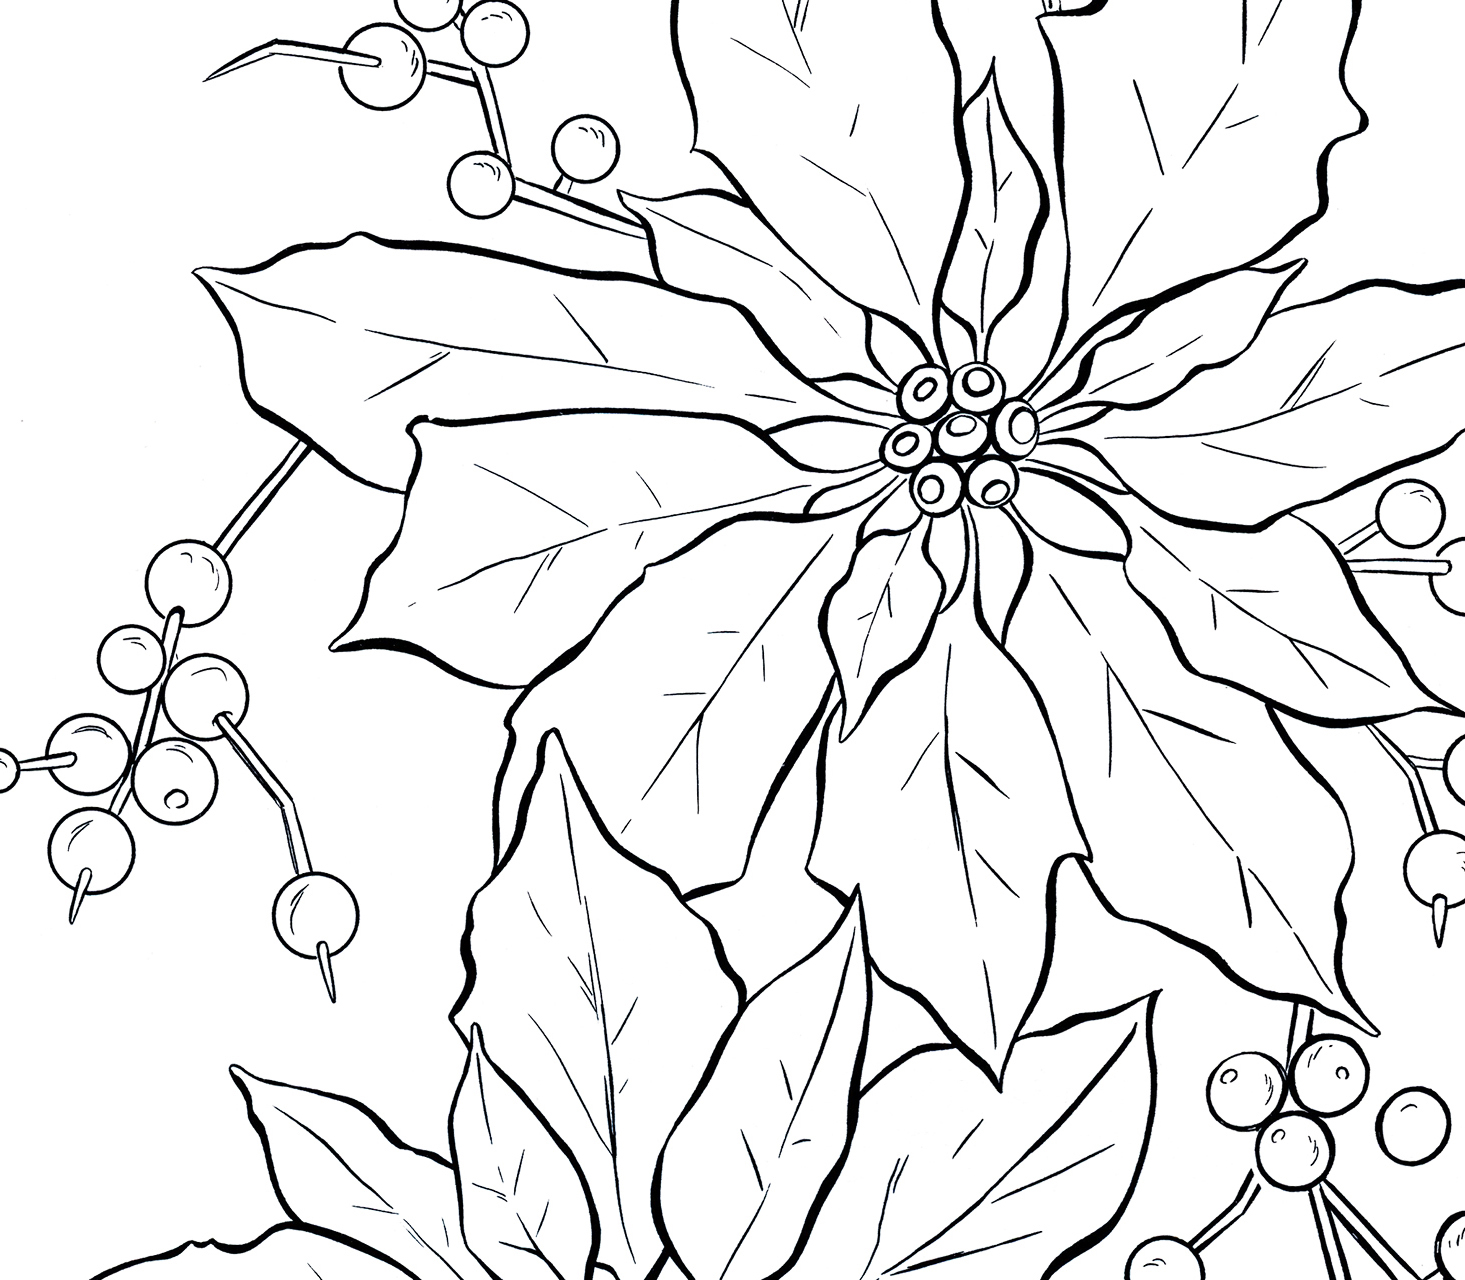 Line Art Xmas : Poinsettia line art graphicsfairy thumb the graphics fairy